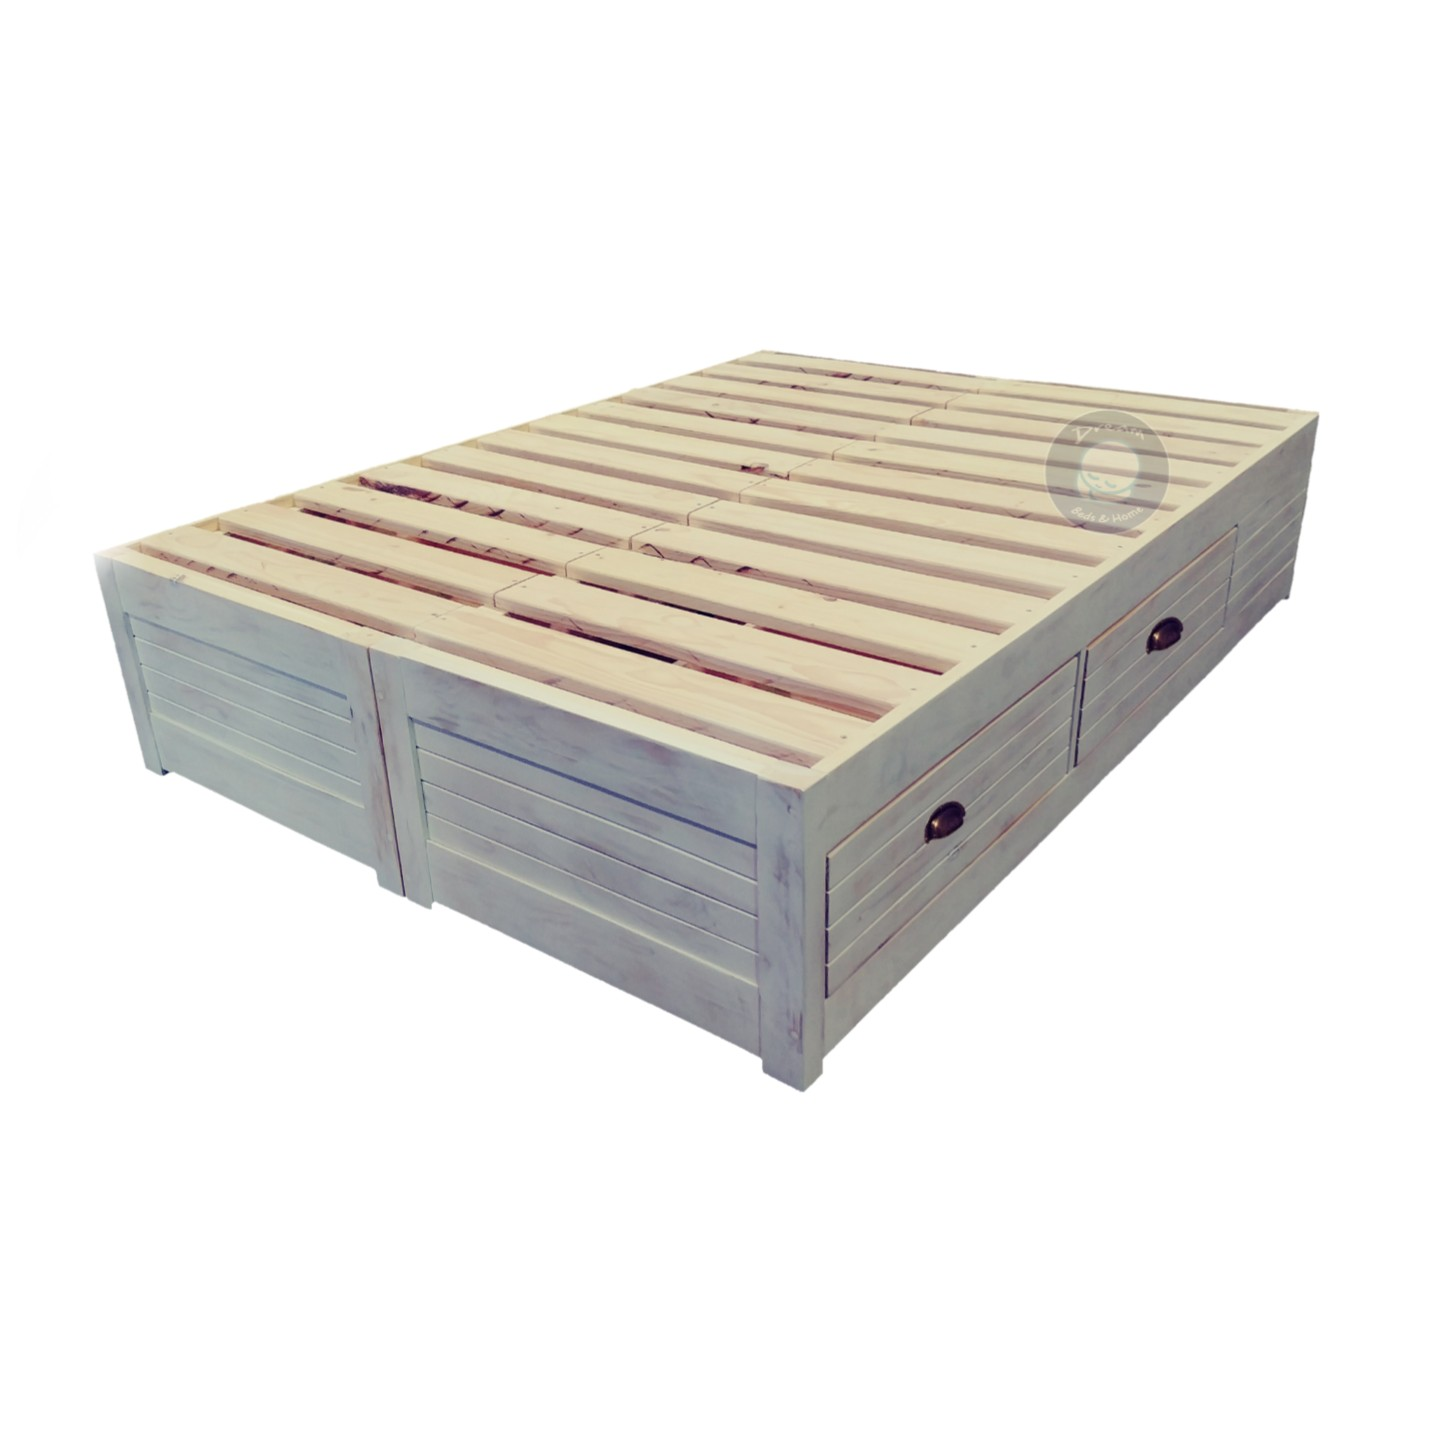 King Storage Bed Base With Drawers Dream Beds